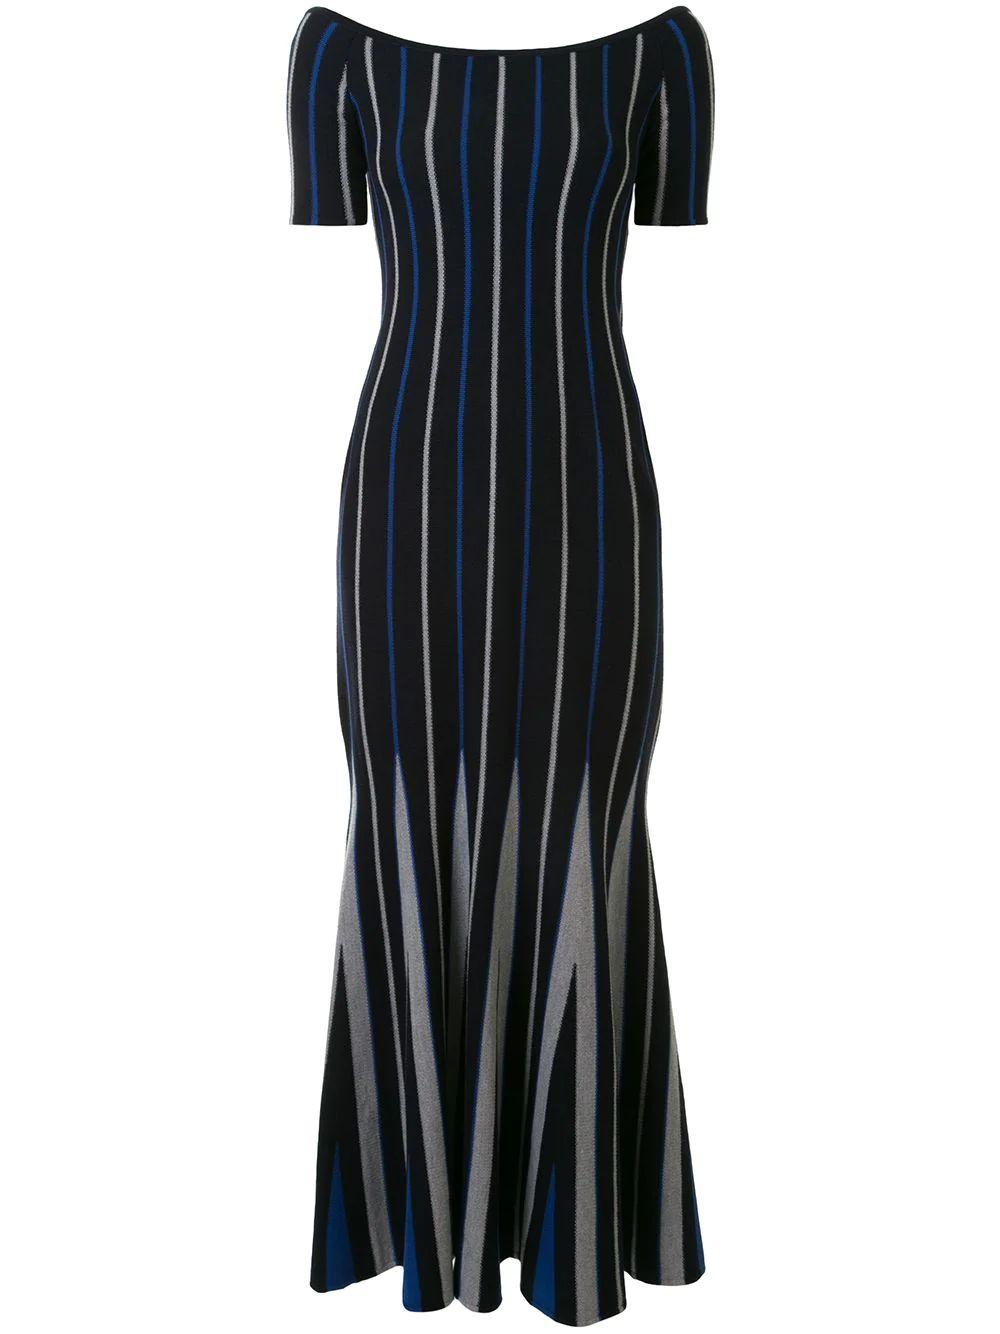 Medea Striped Knit Dress